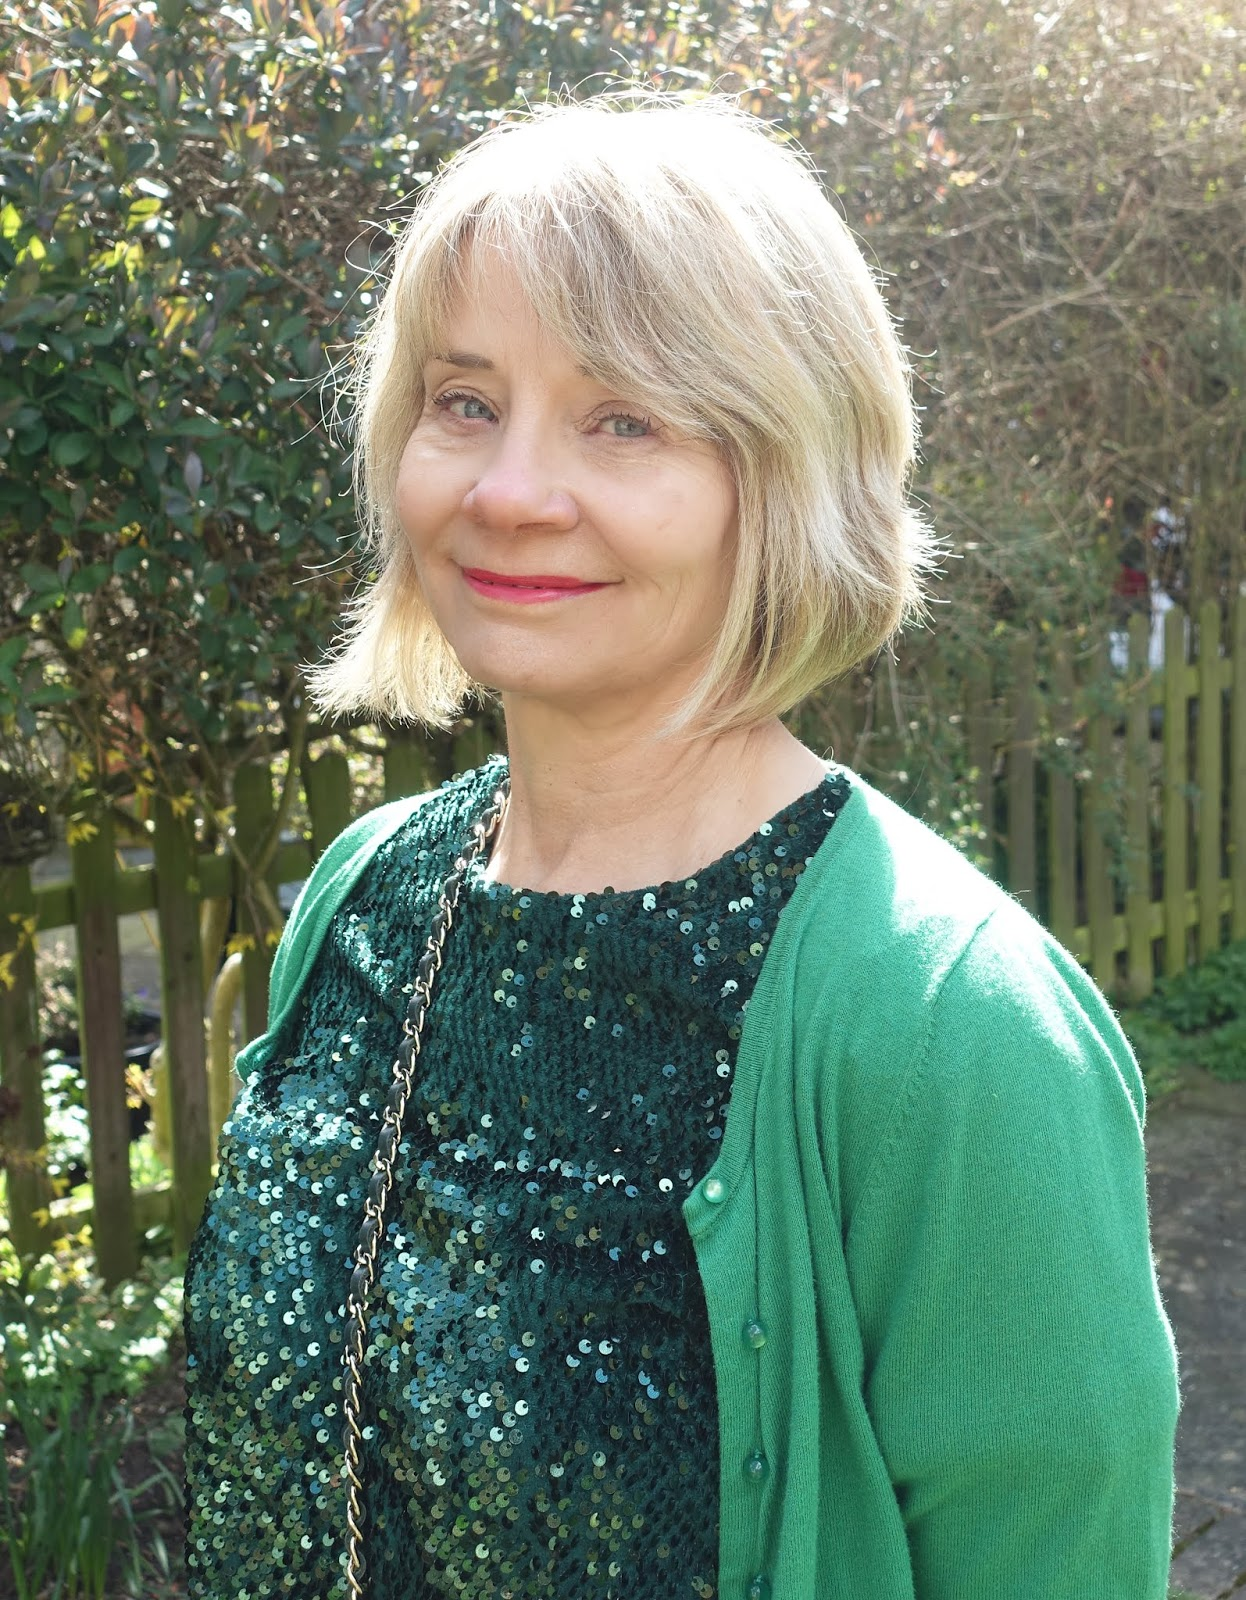 Portrait of mid life woman blonde hair in green sequin top